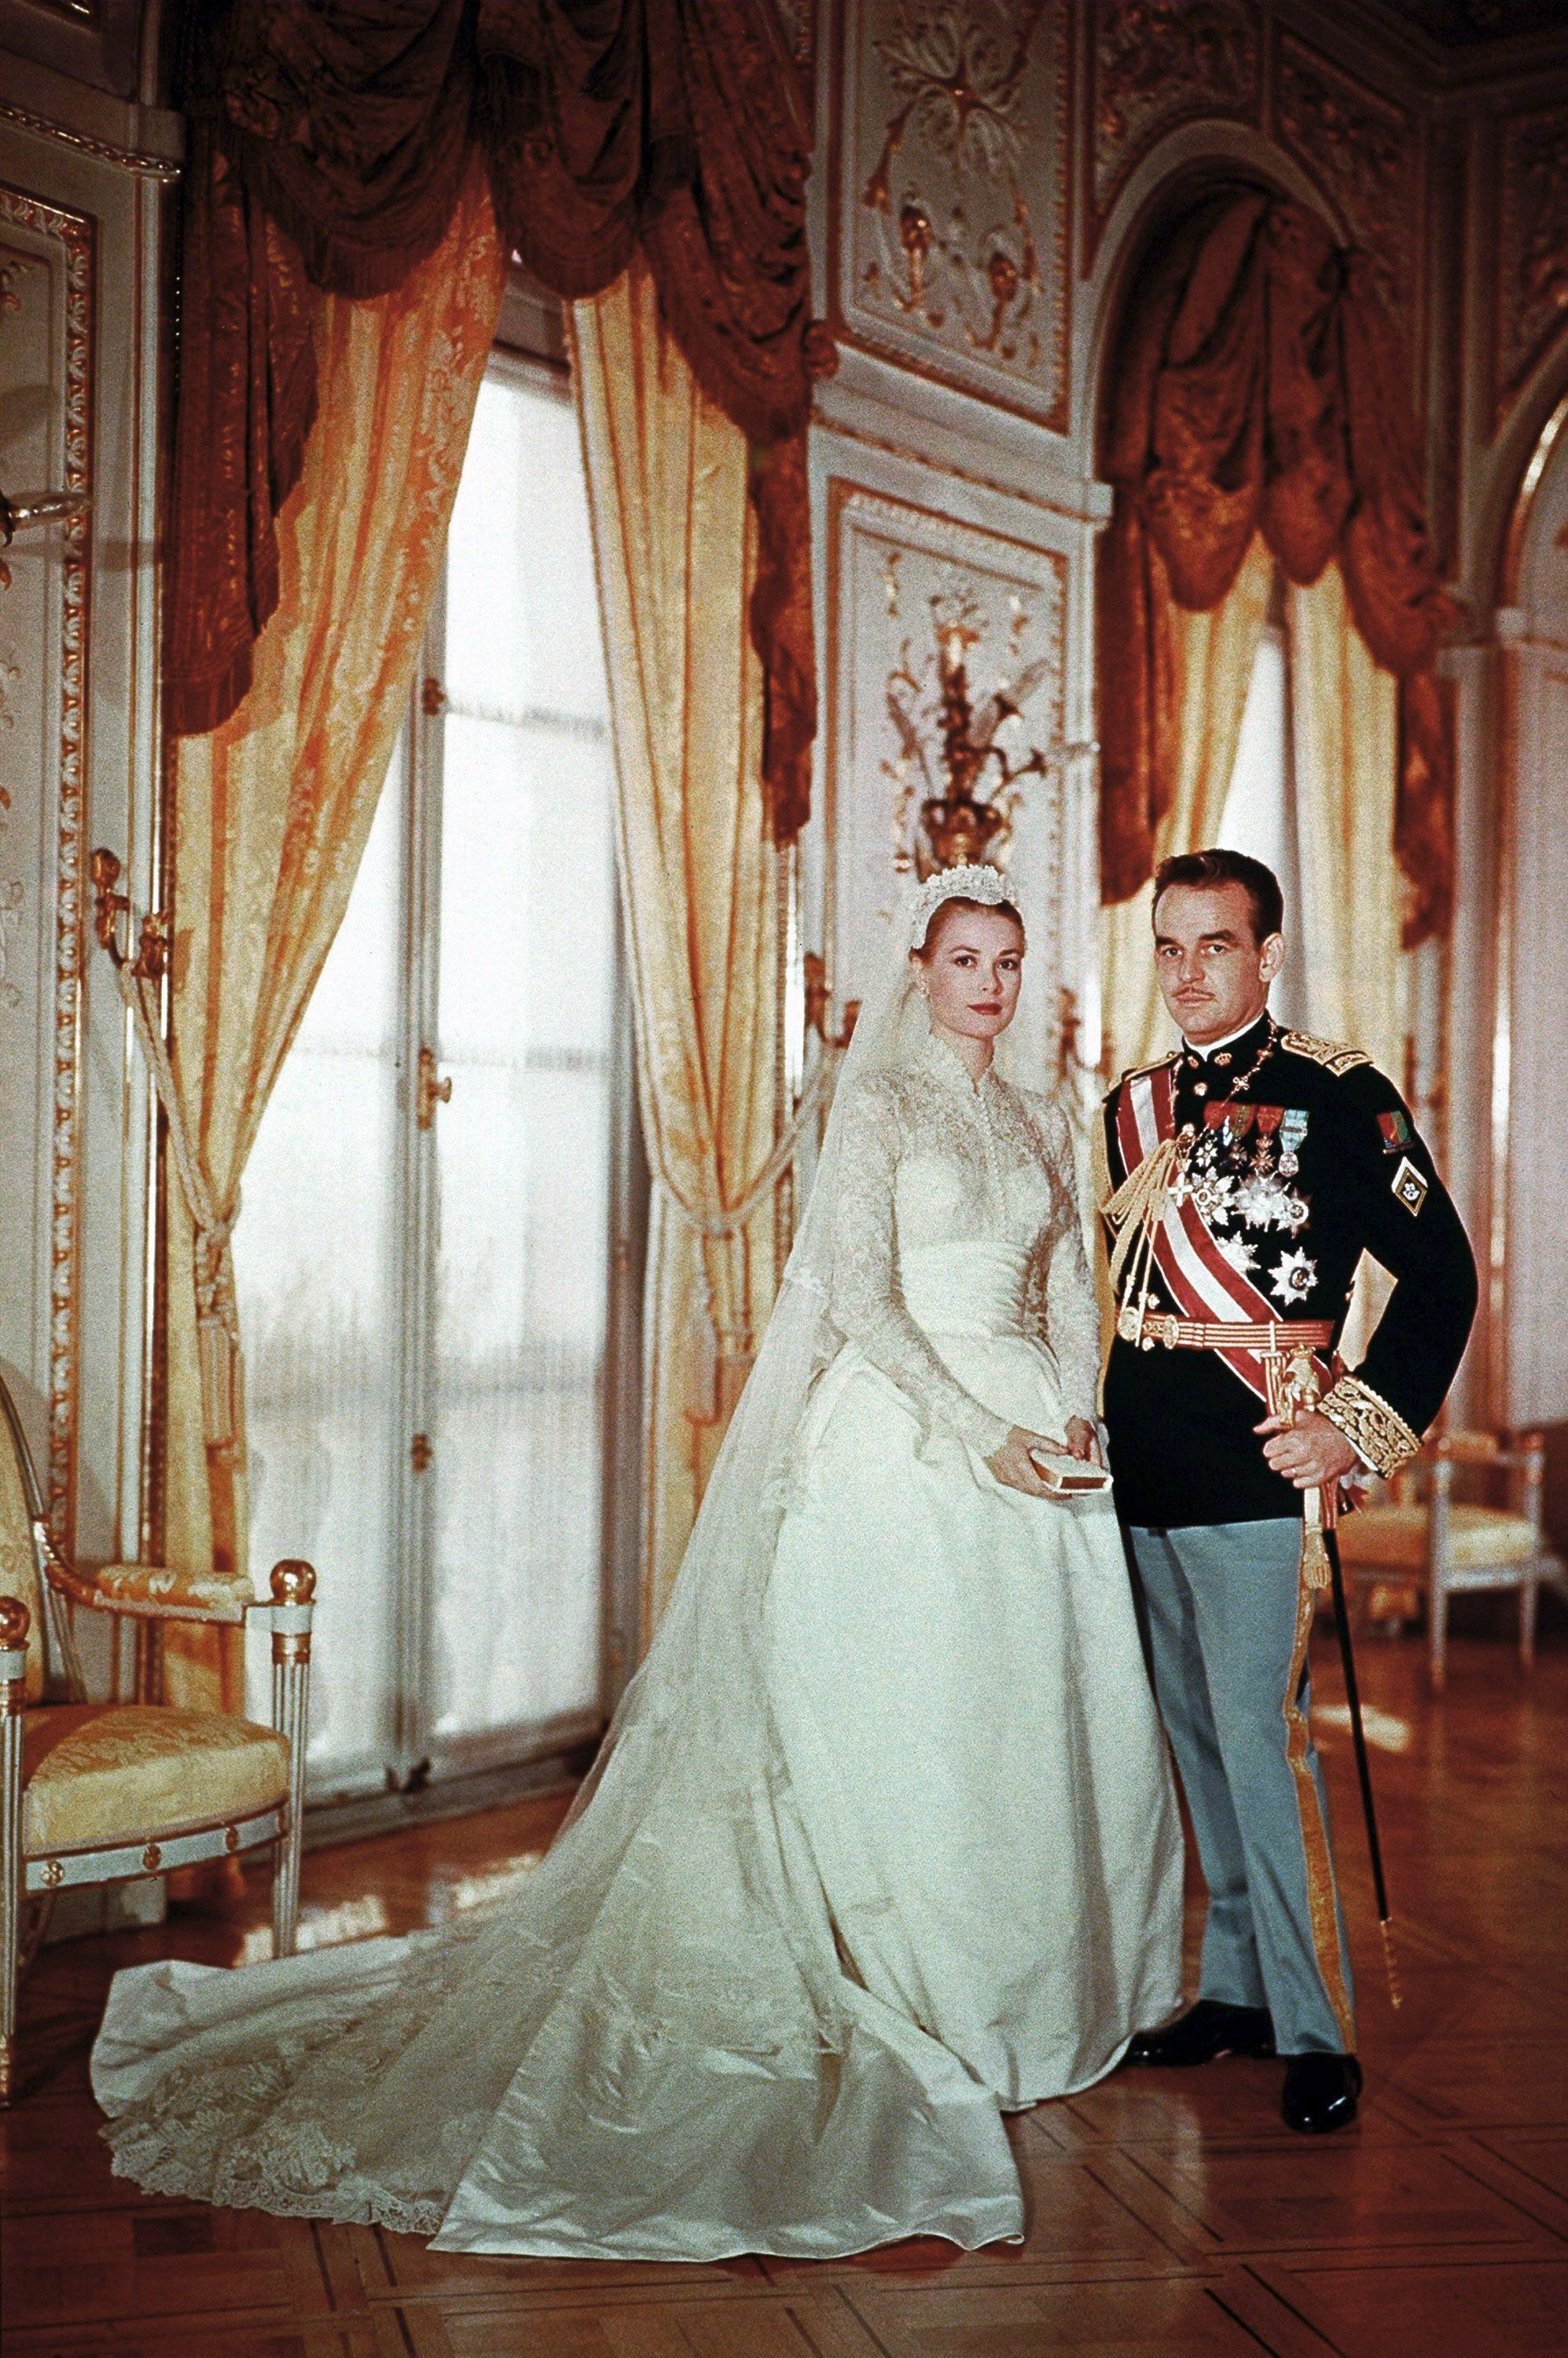 26 of the Best Royal Wedding Gowns of All Time